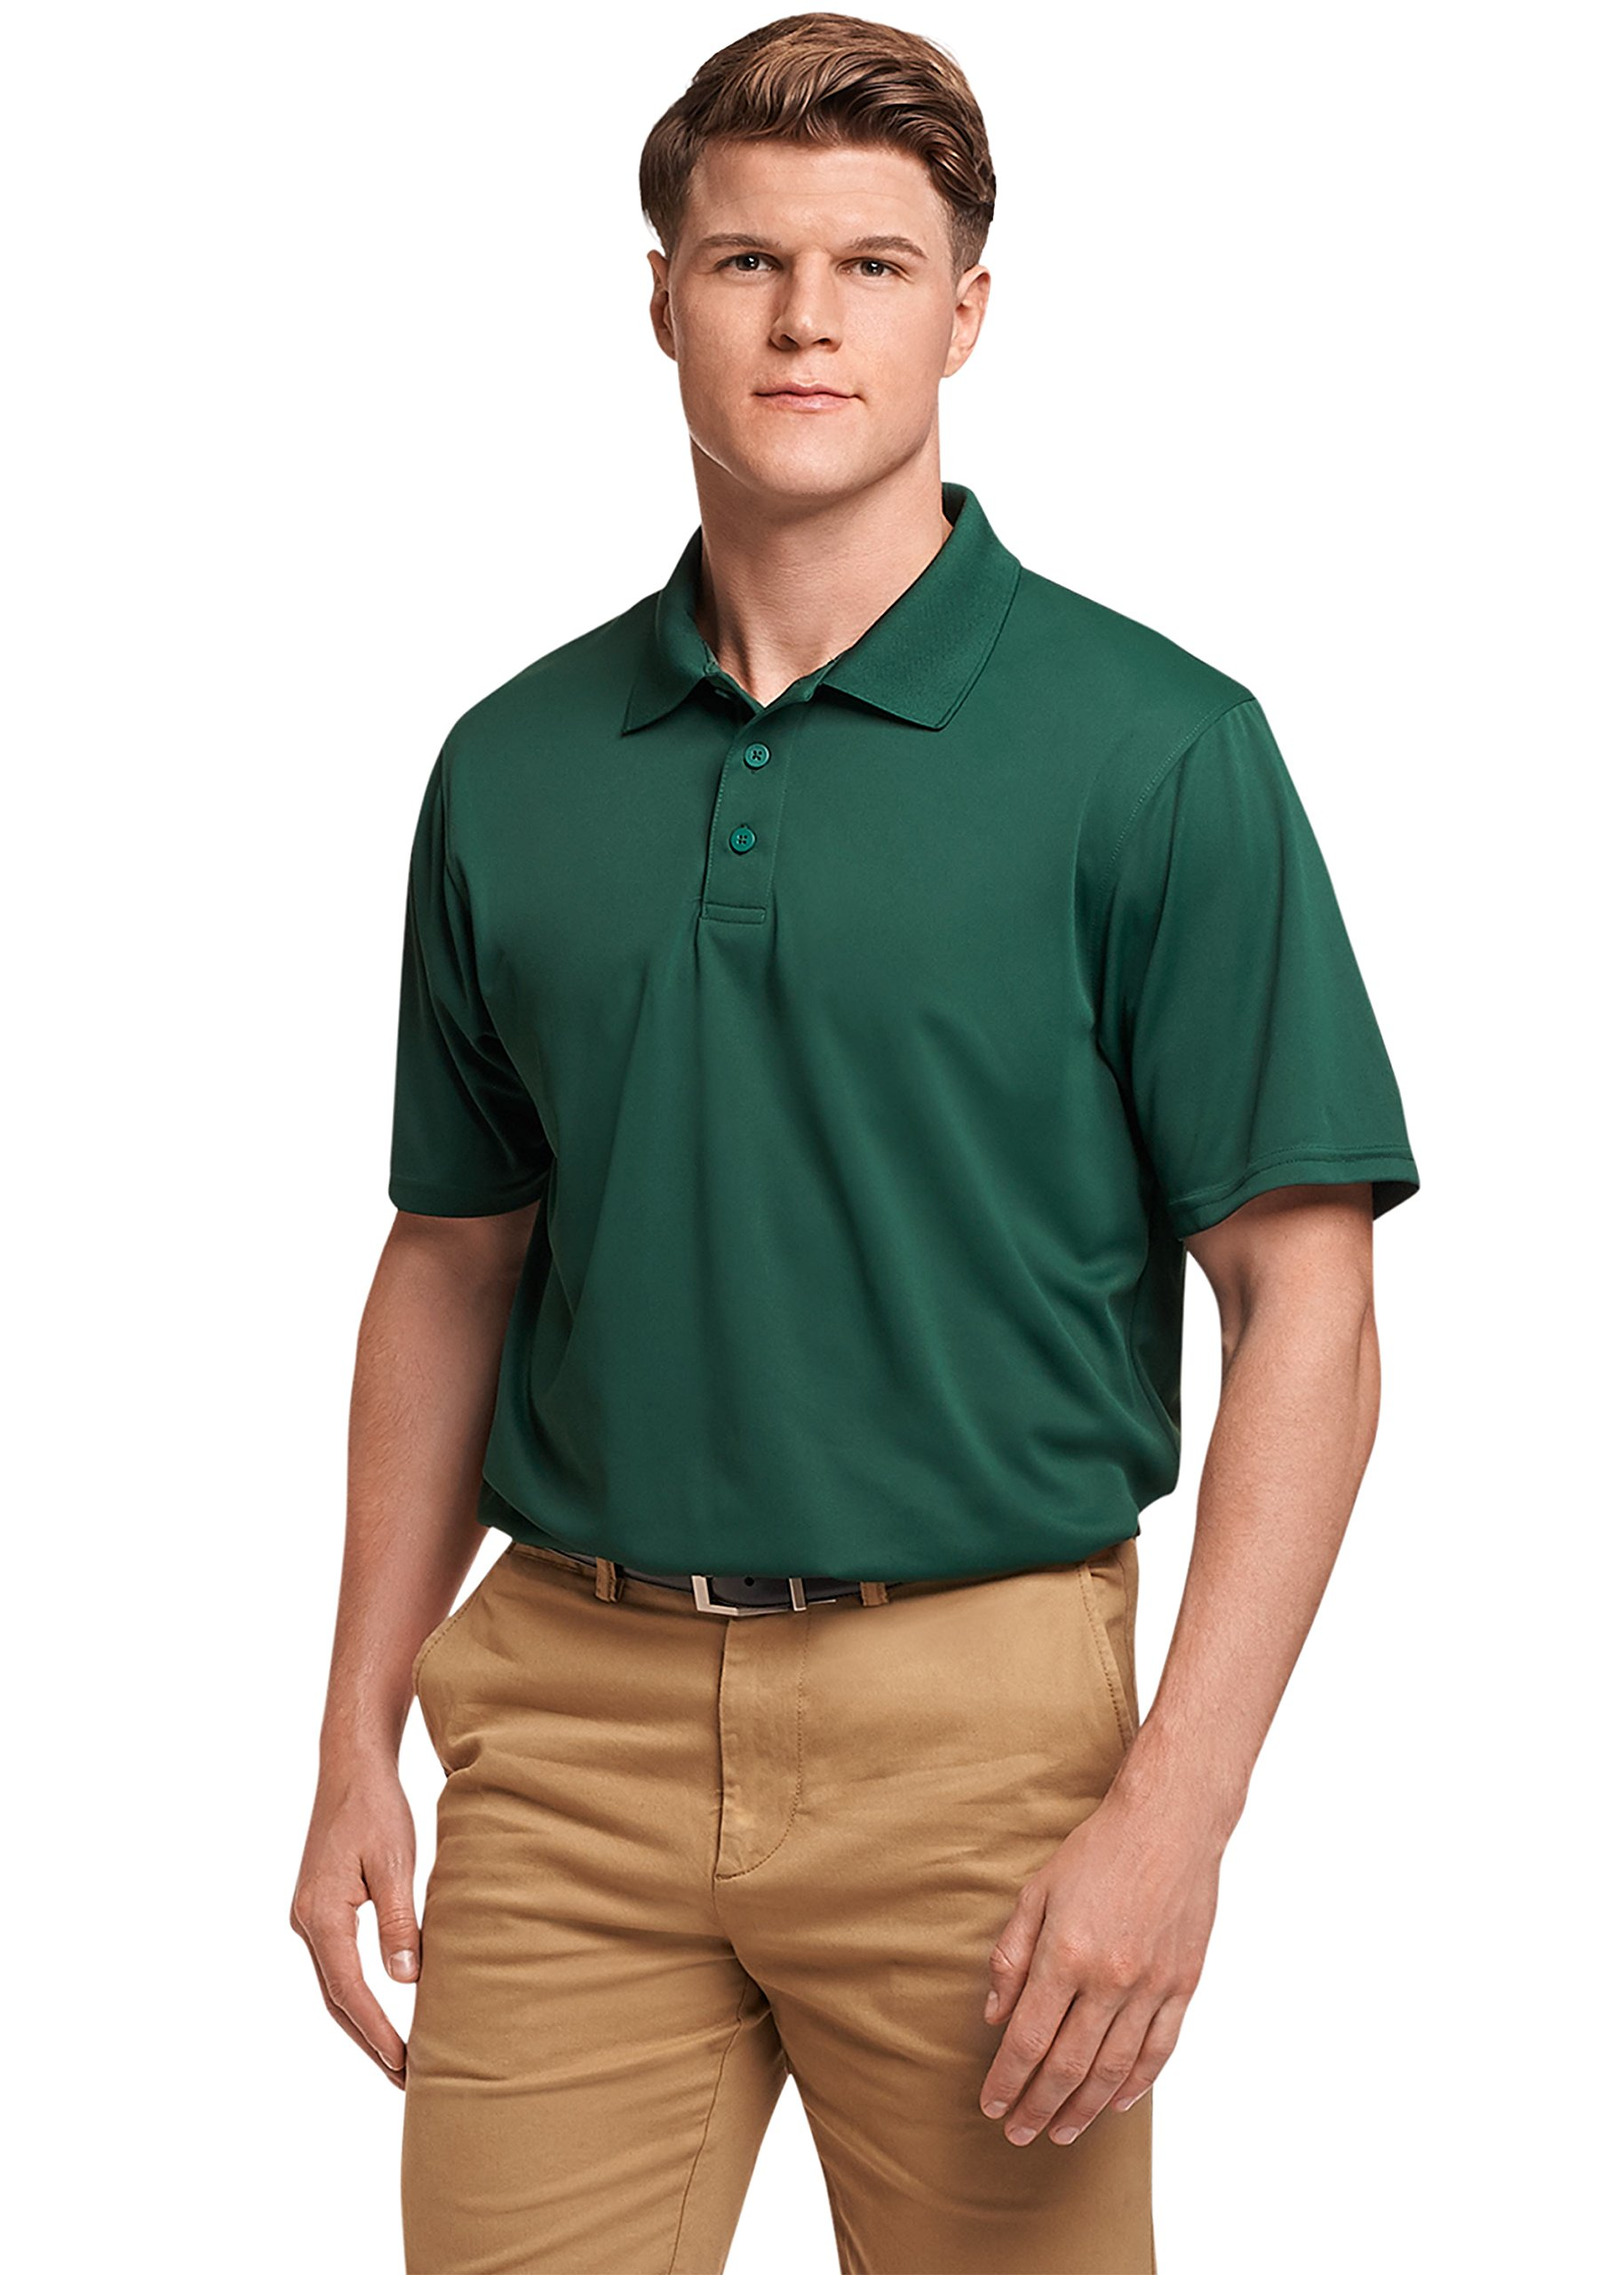 Russell Athletic Men's Standard Dri-Power Performance Golf Polo